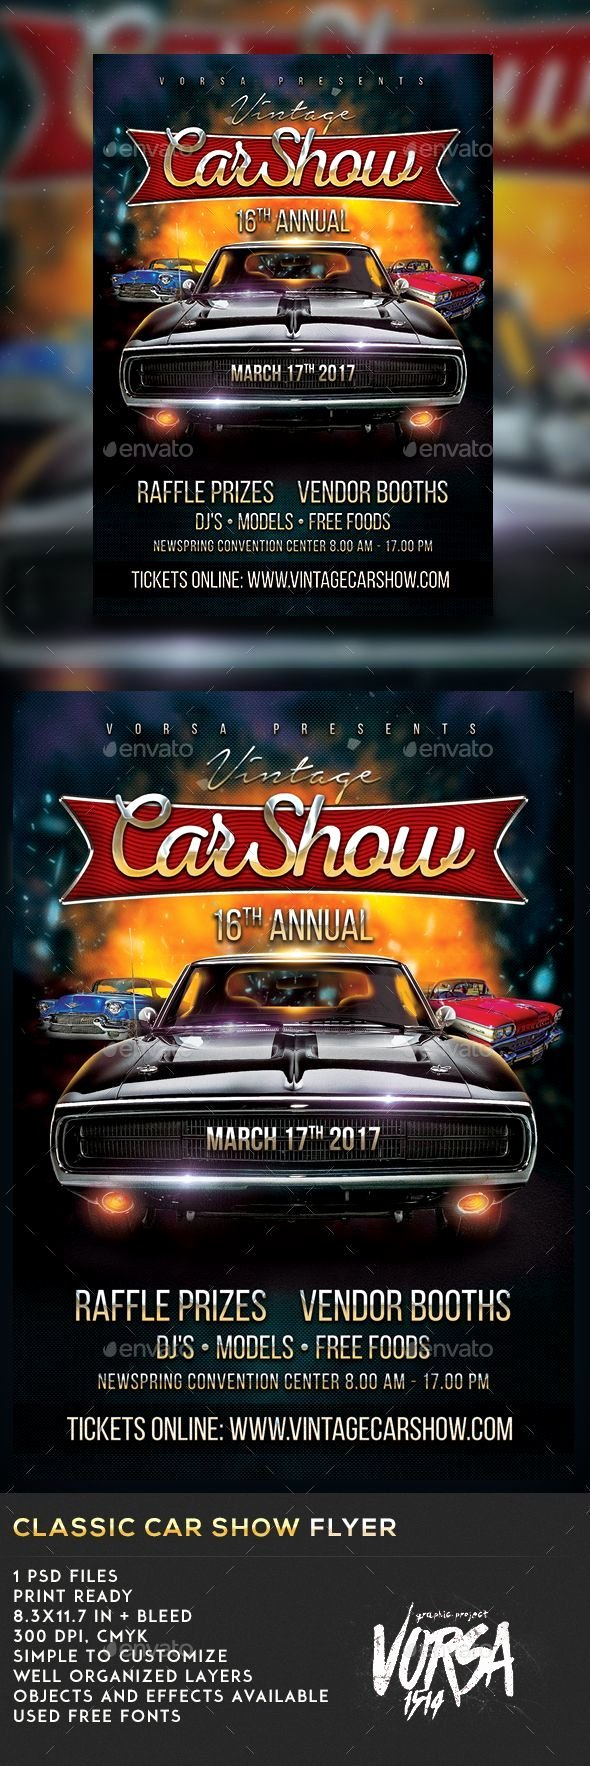 Car Show Flyer Template Free Best Of Classic Car Show Flyer Template Psd